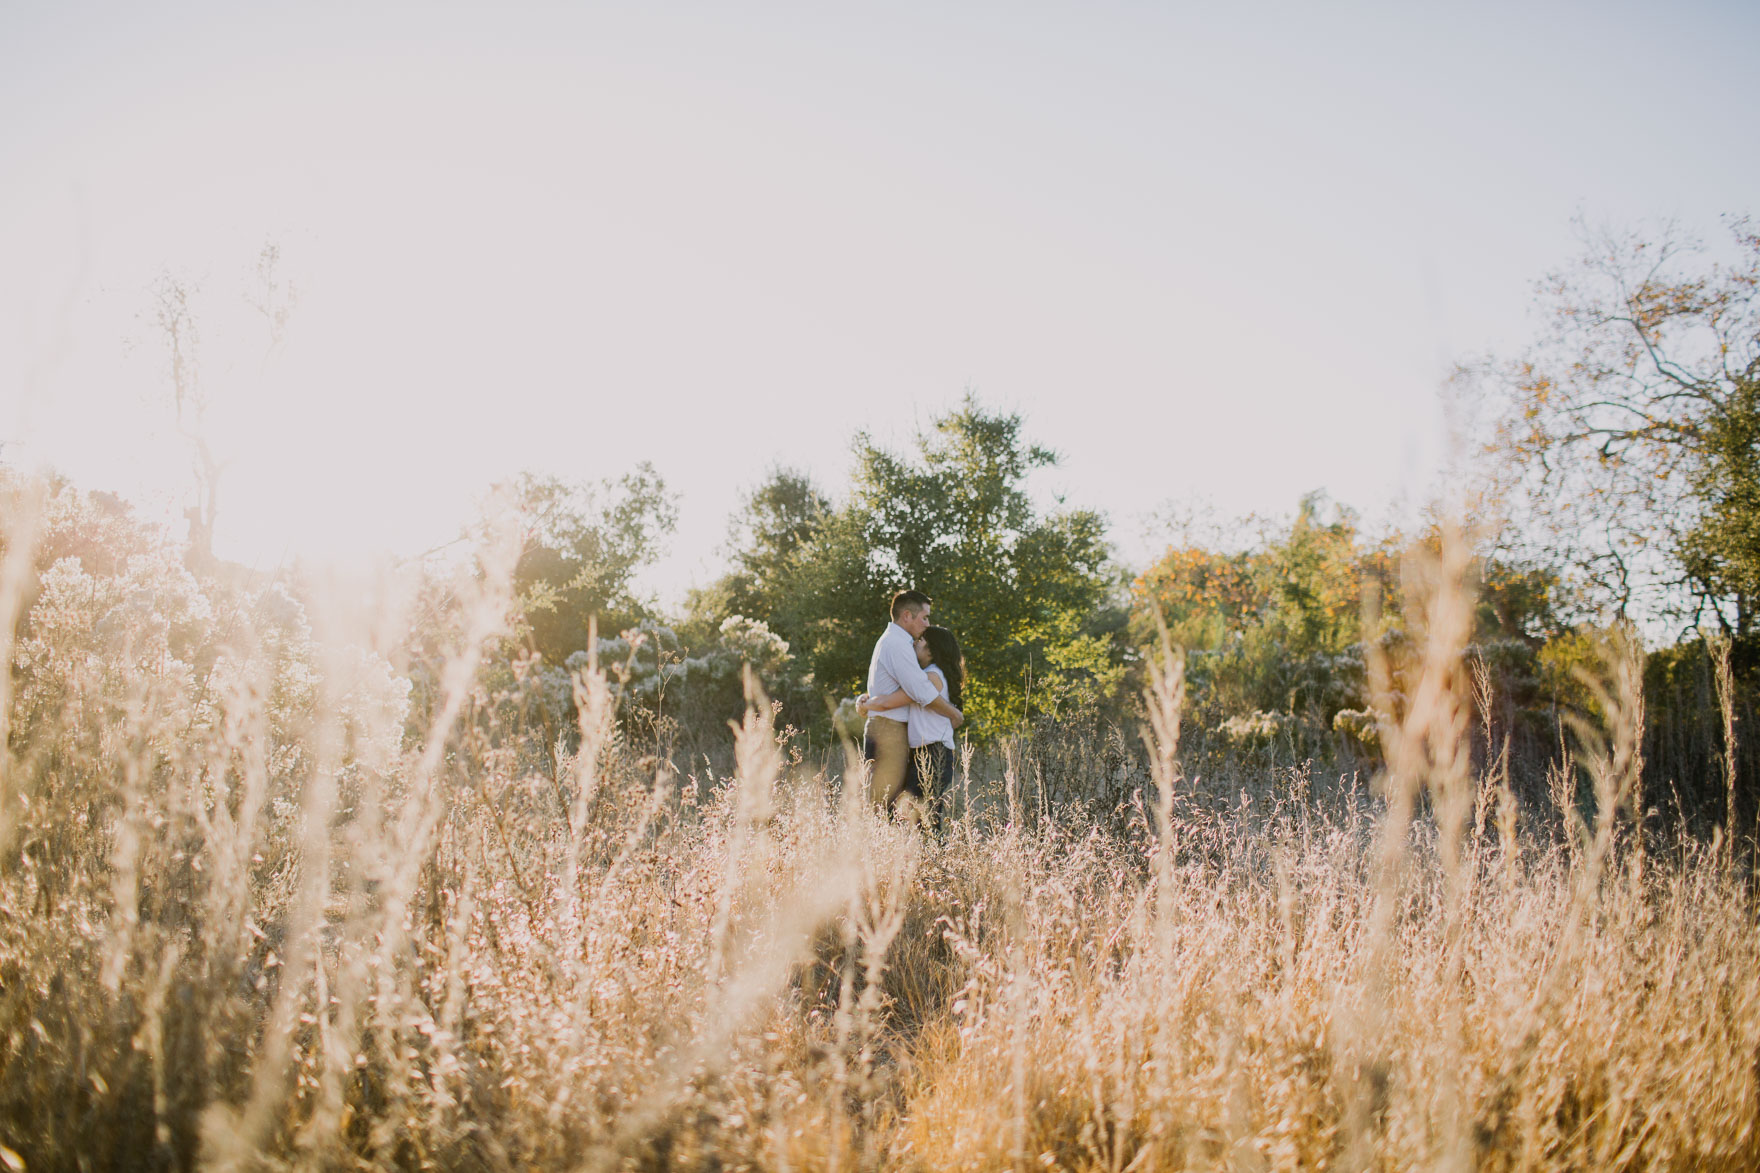 Darling Little Nature Walk – Photo by Let's Frolic Together